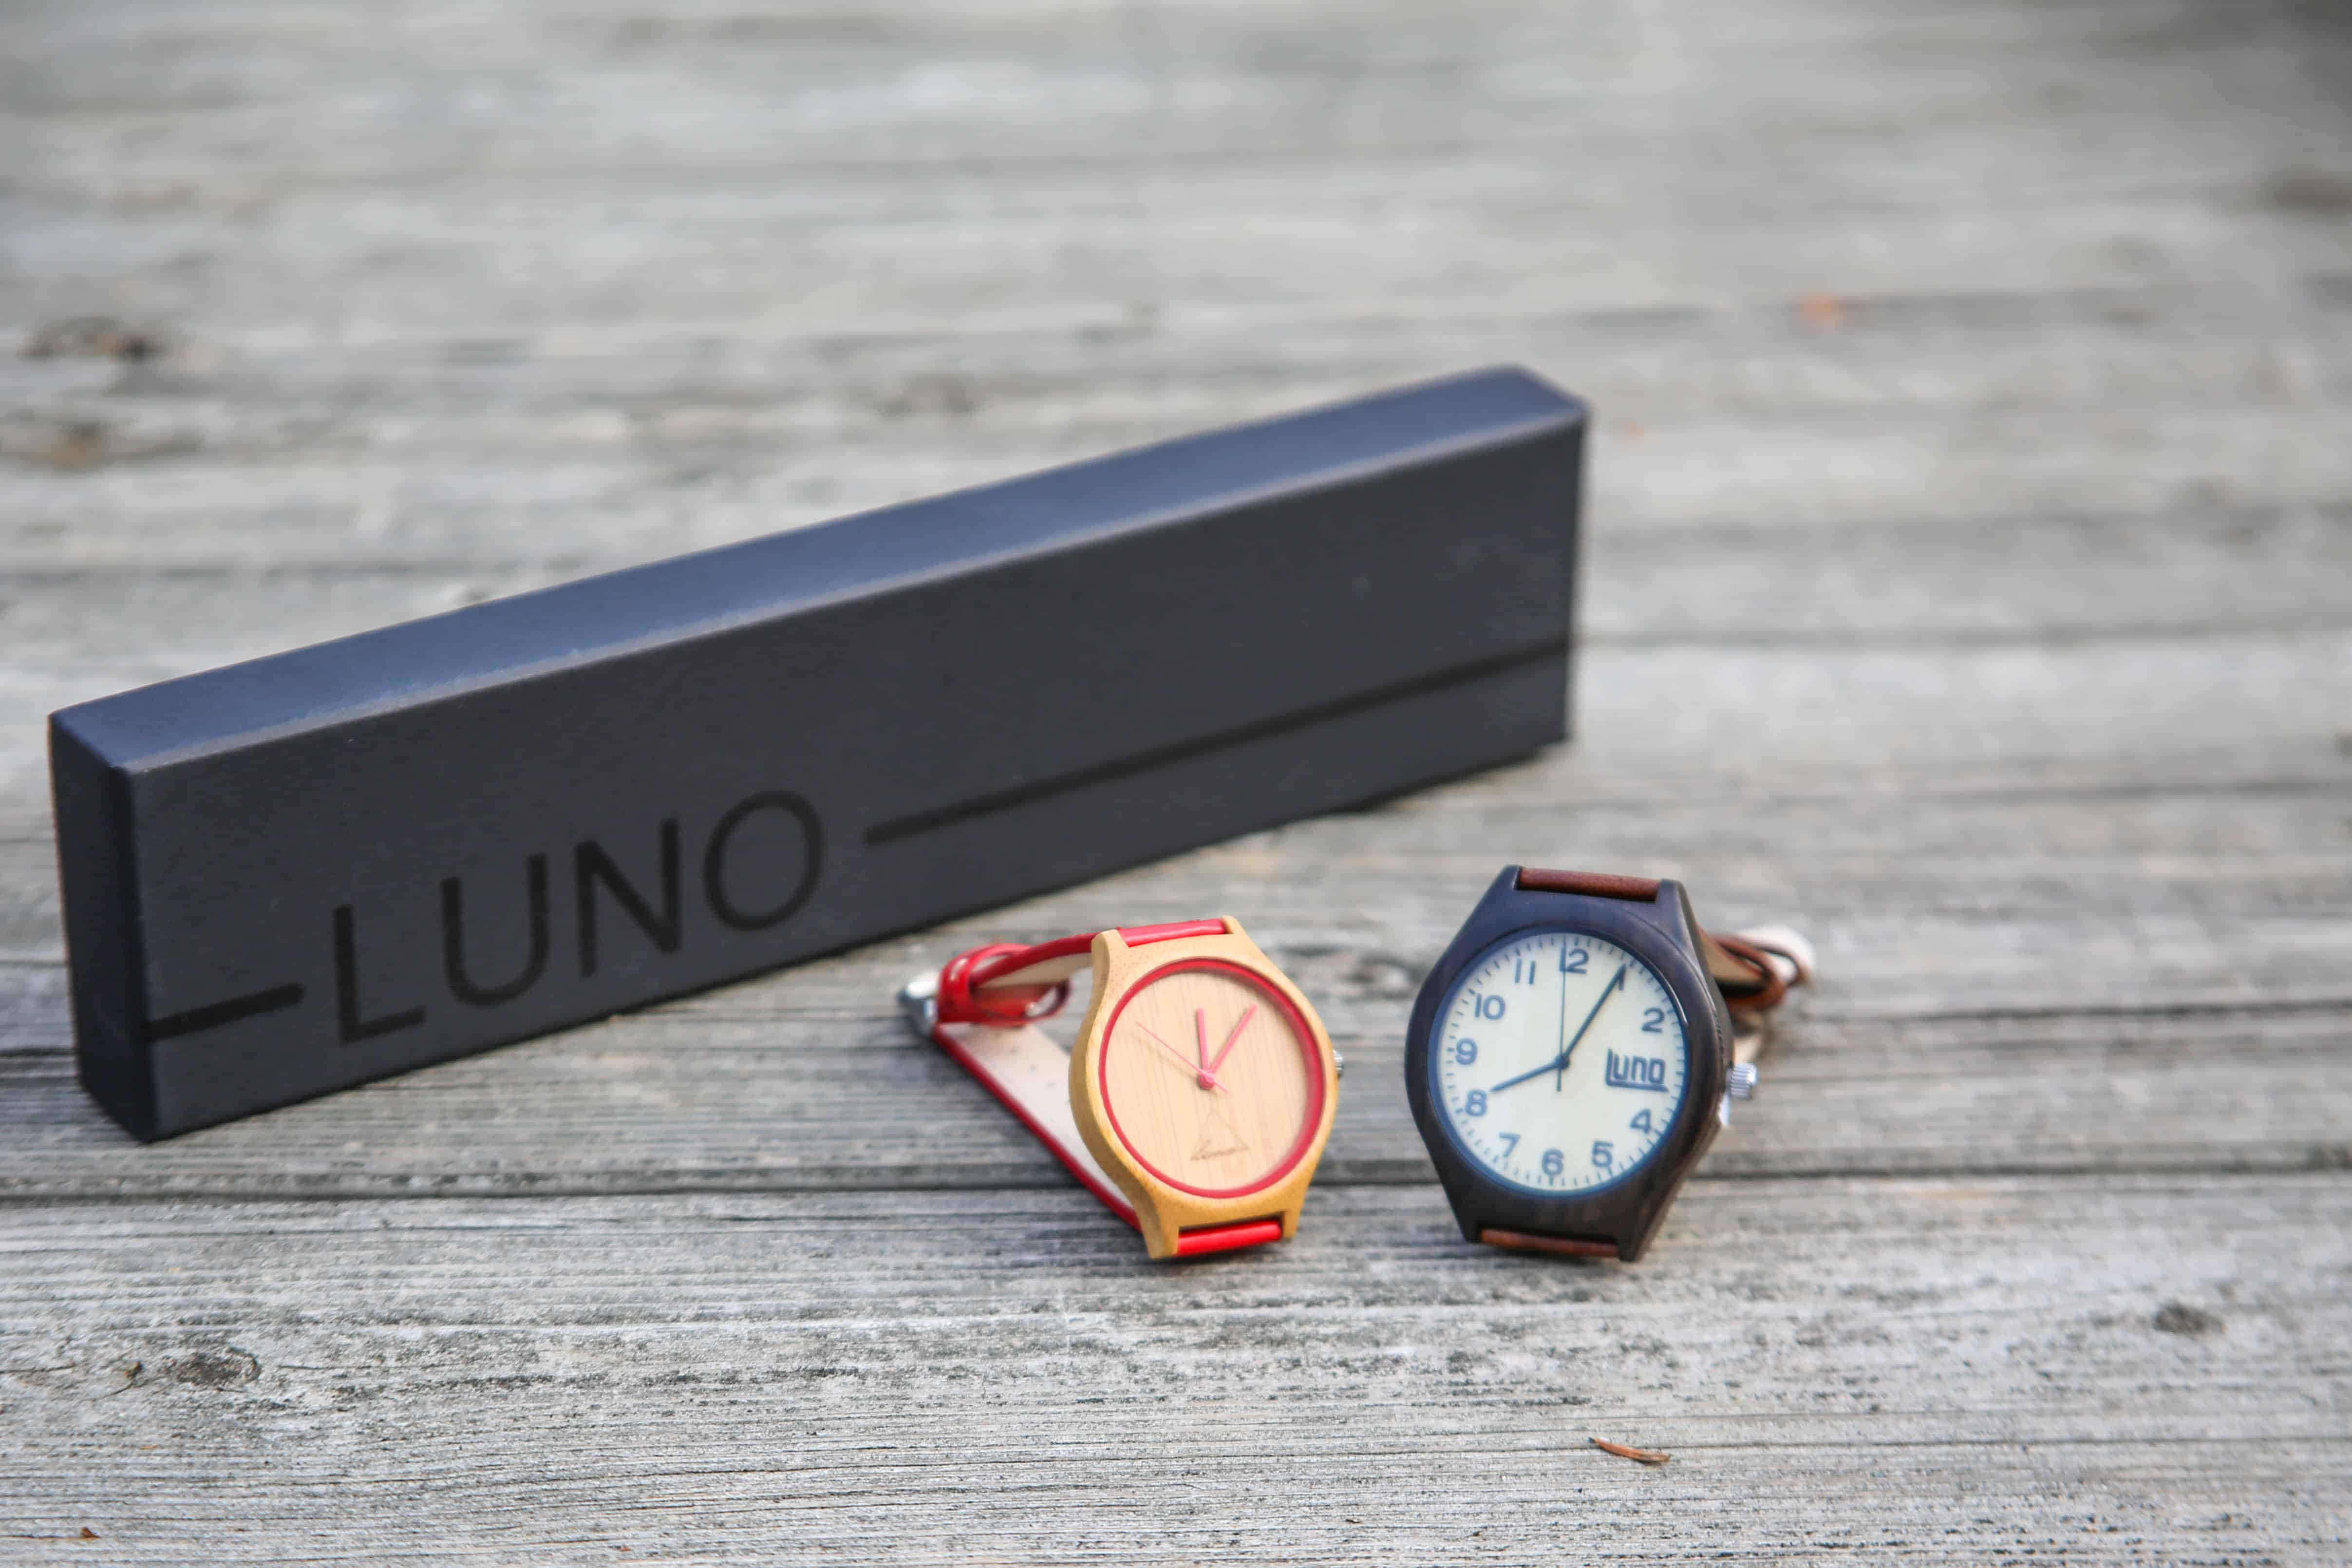 luno wear: Wooden Watches Style